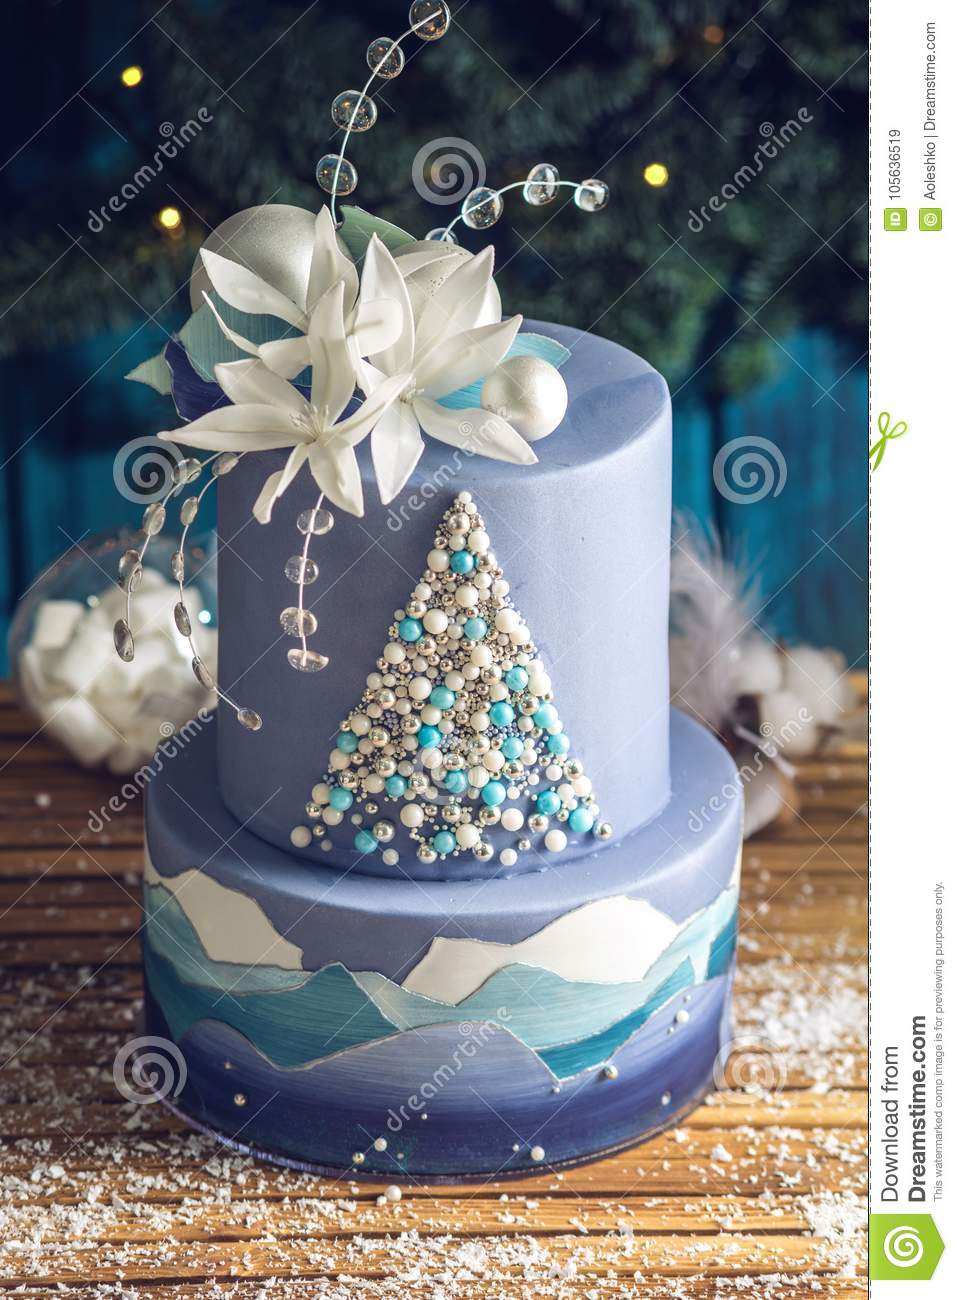 Tiered Cake The Blue Cake With The Image Of A Christmas Tree And